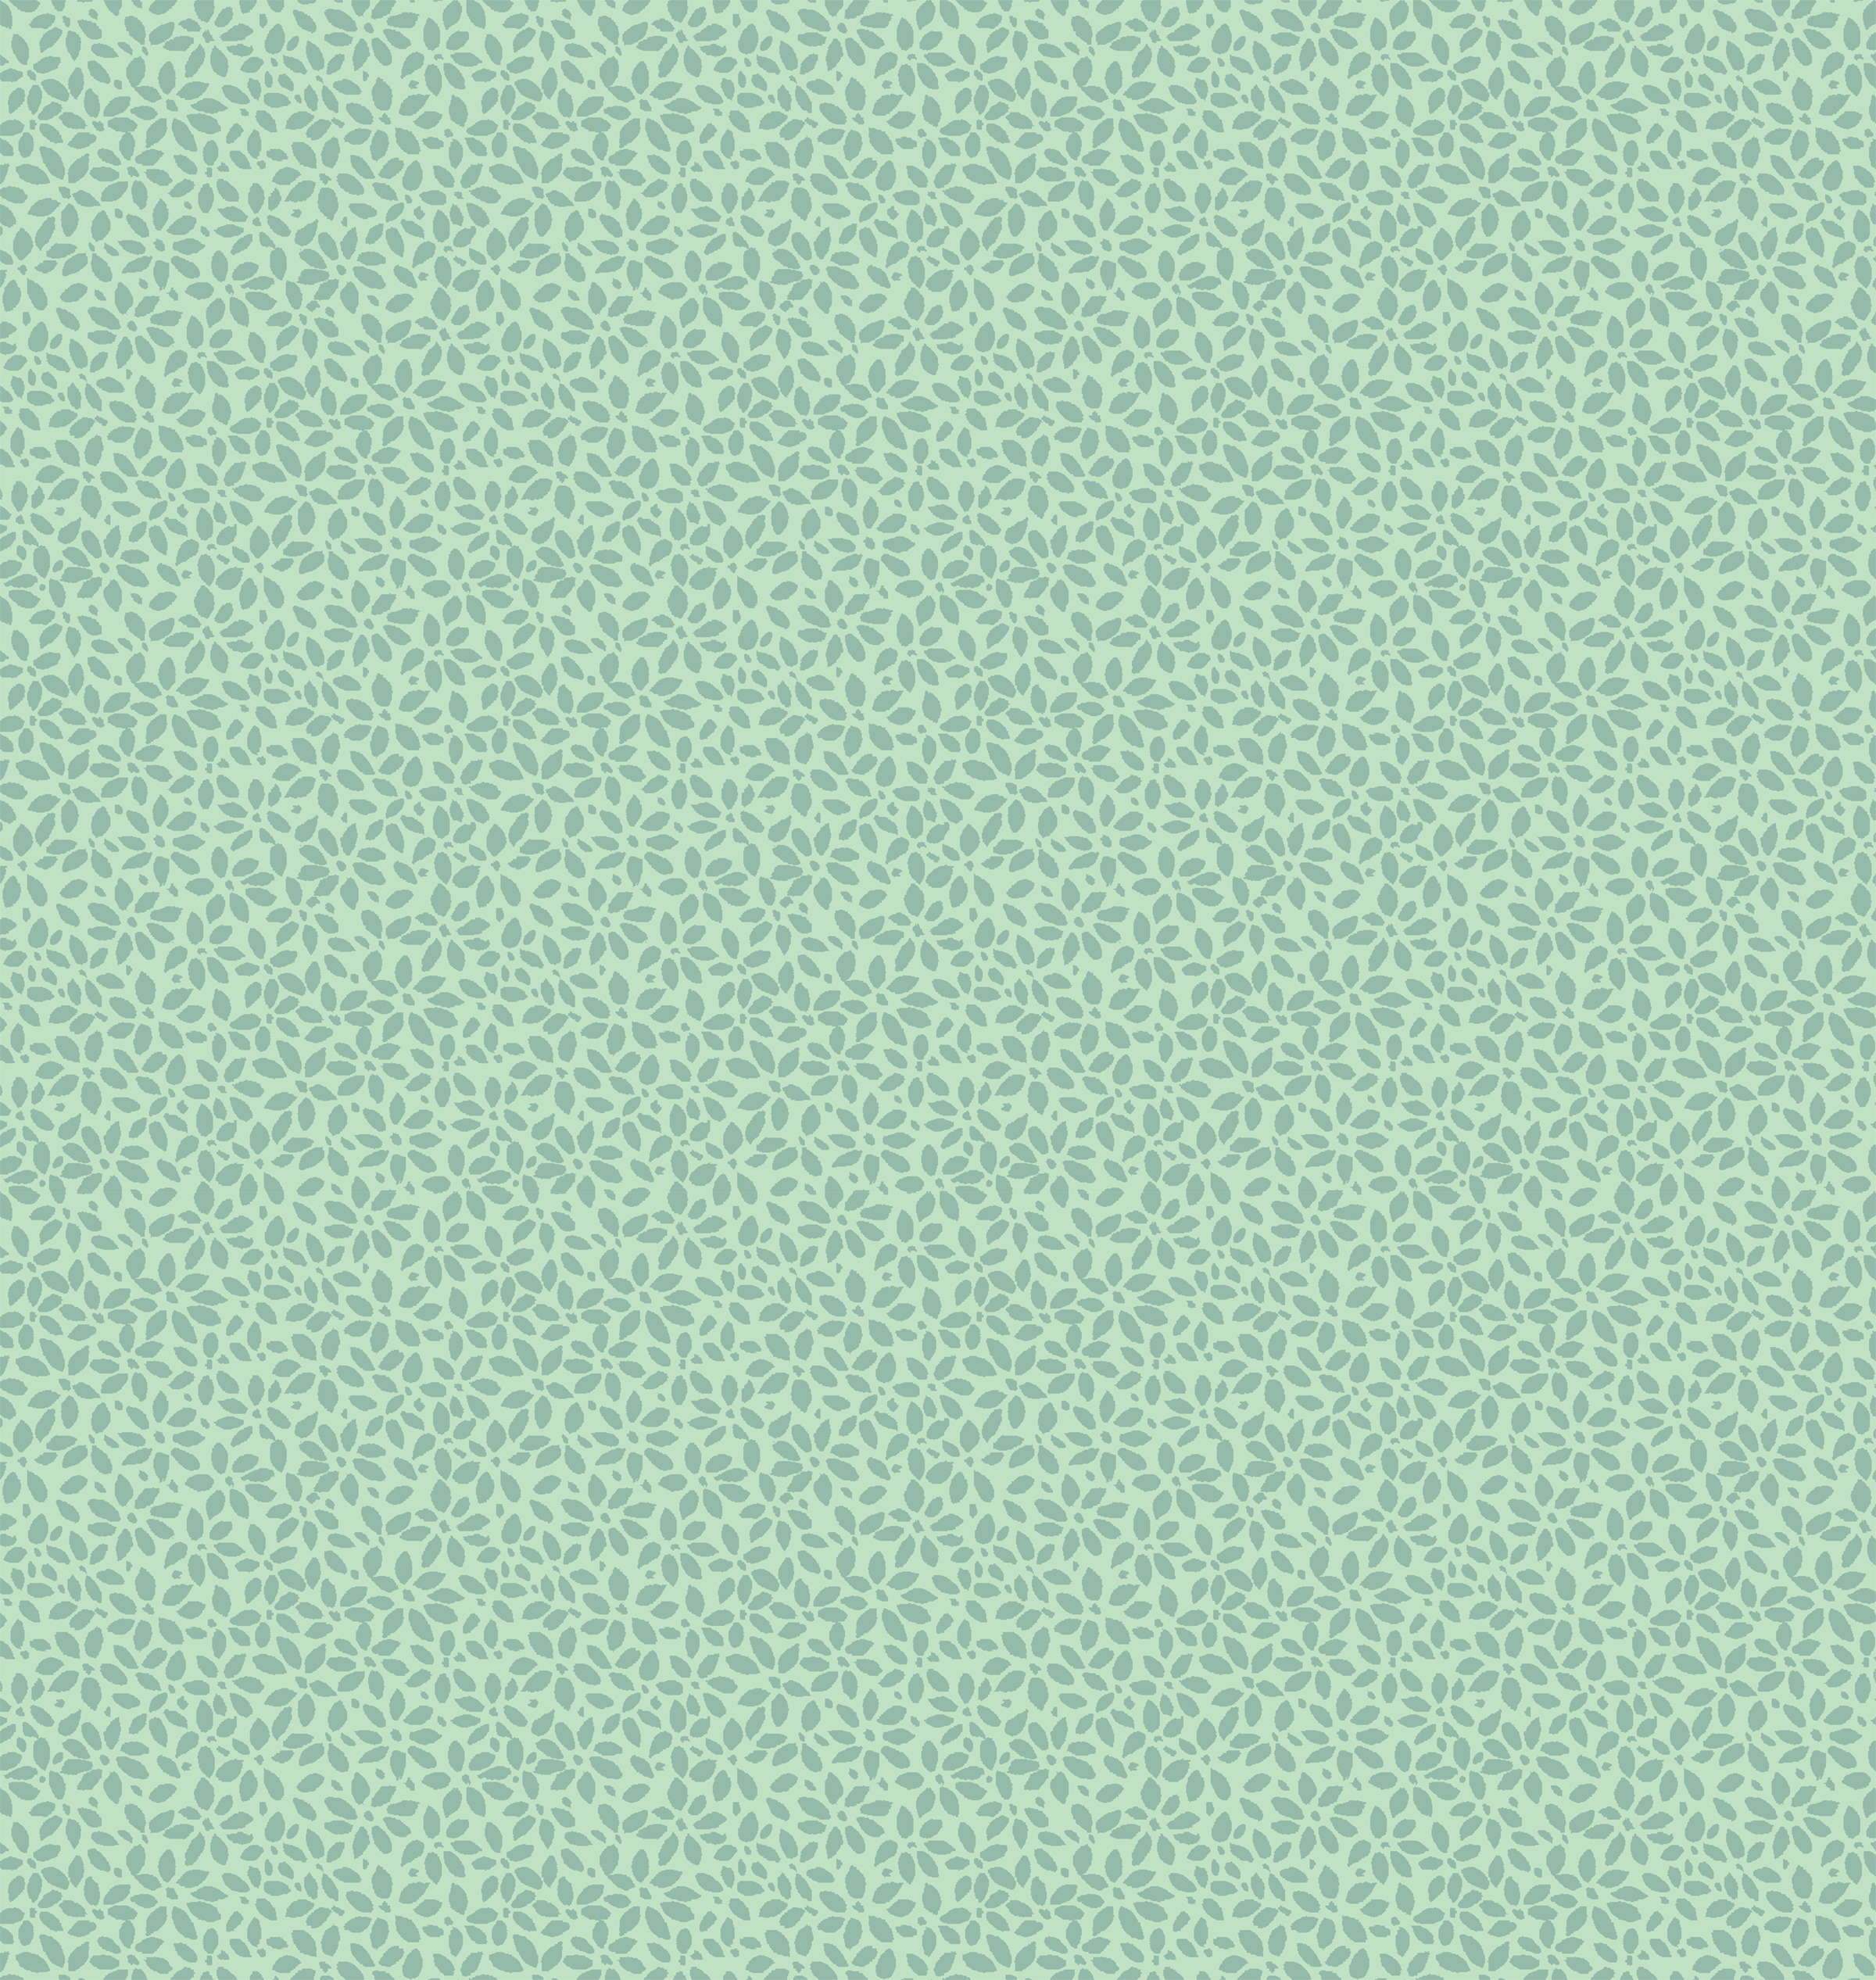 The pattern I developed to fill negative space in the 'Chai Botanical' design.